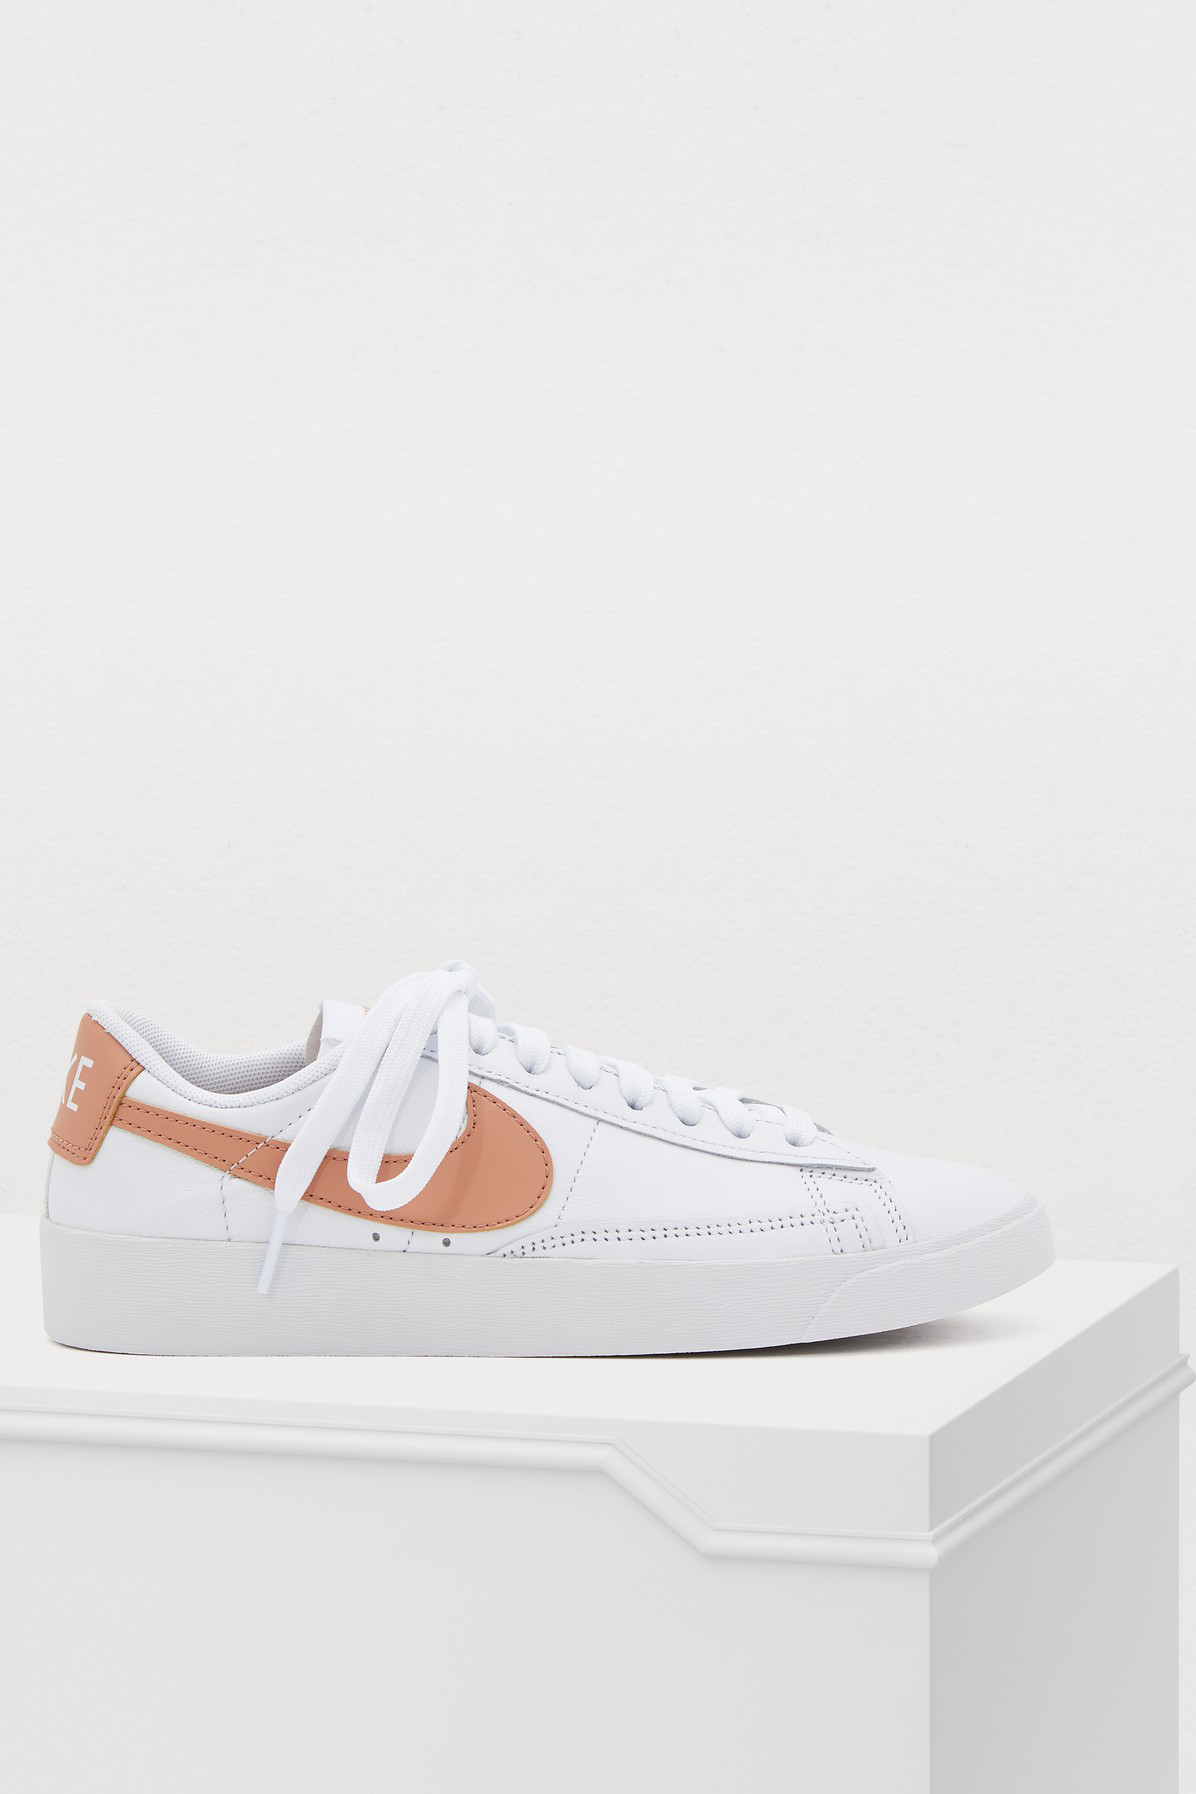 90d0a99159e6 Nike Blazer Low Sneakers In White Rose Gold-White